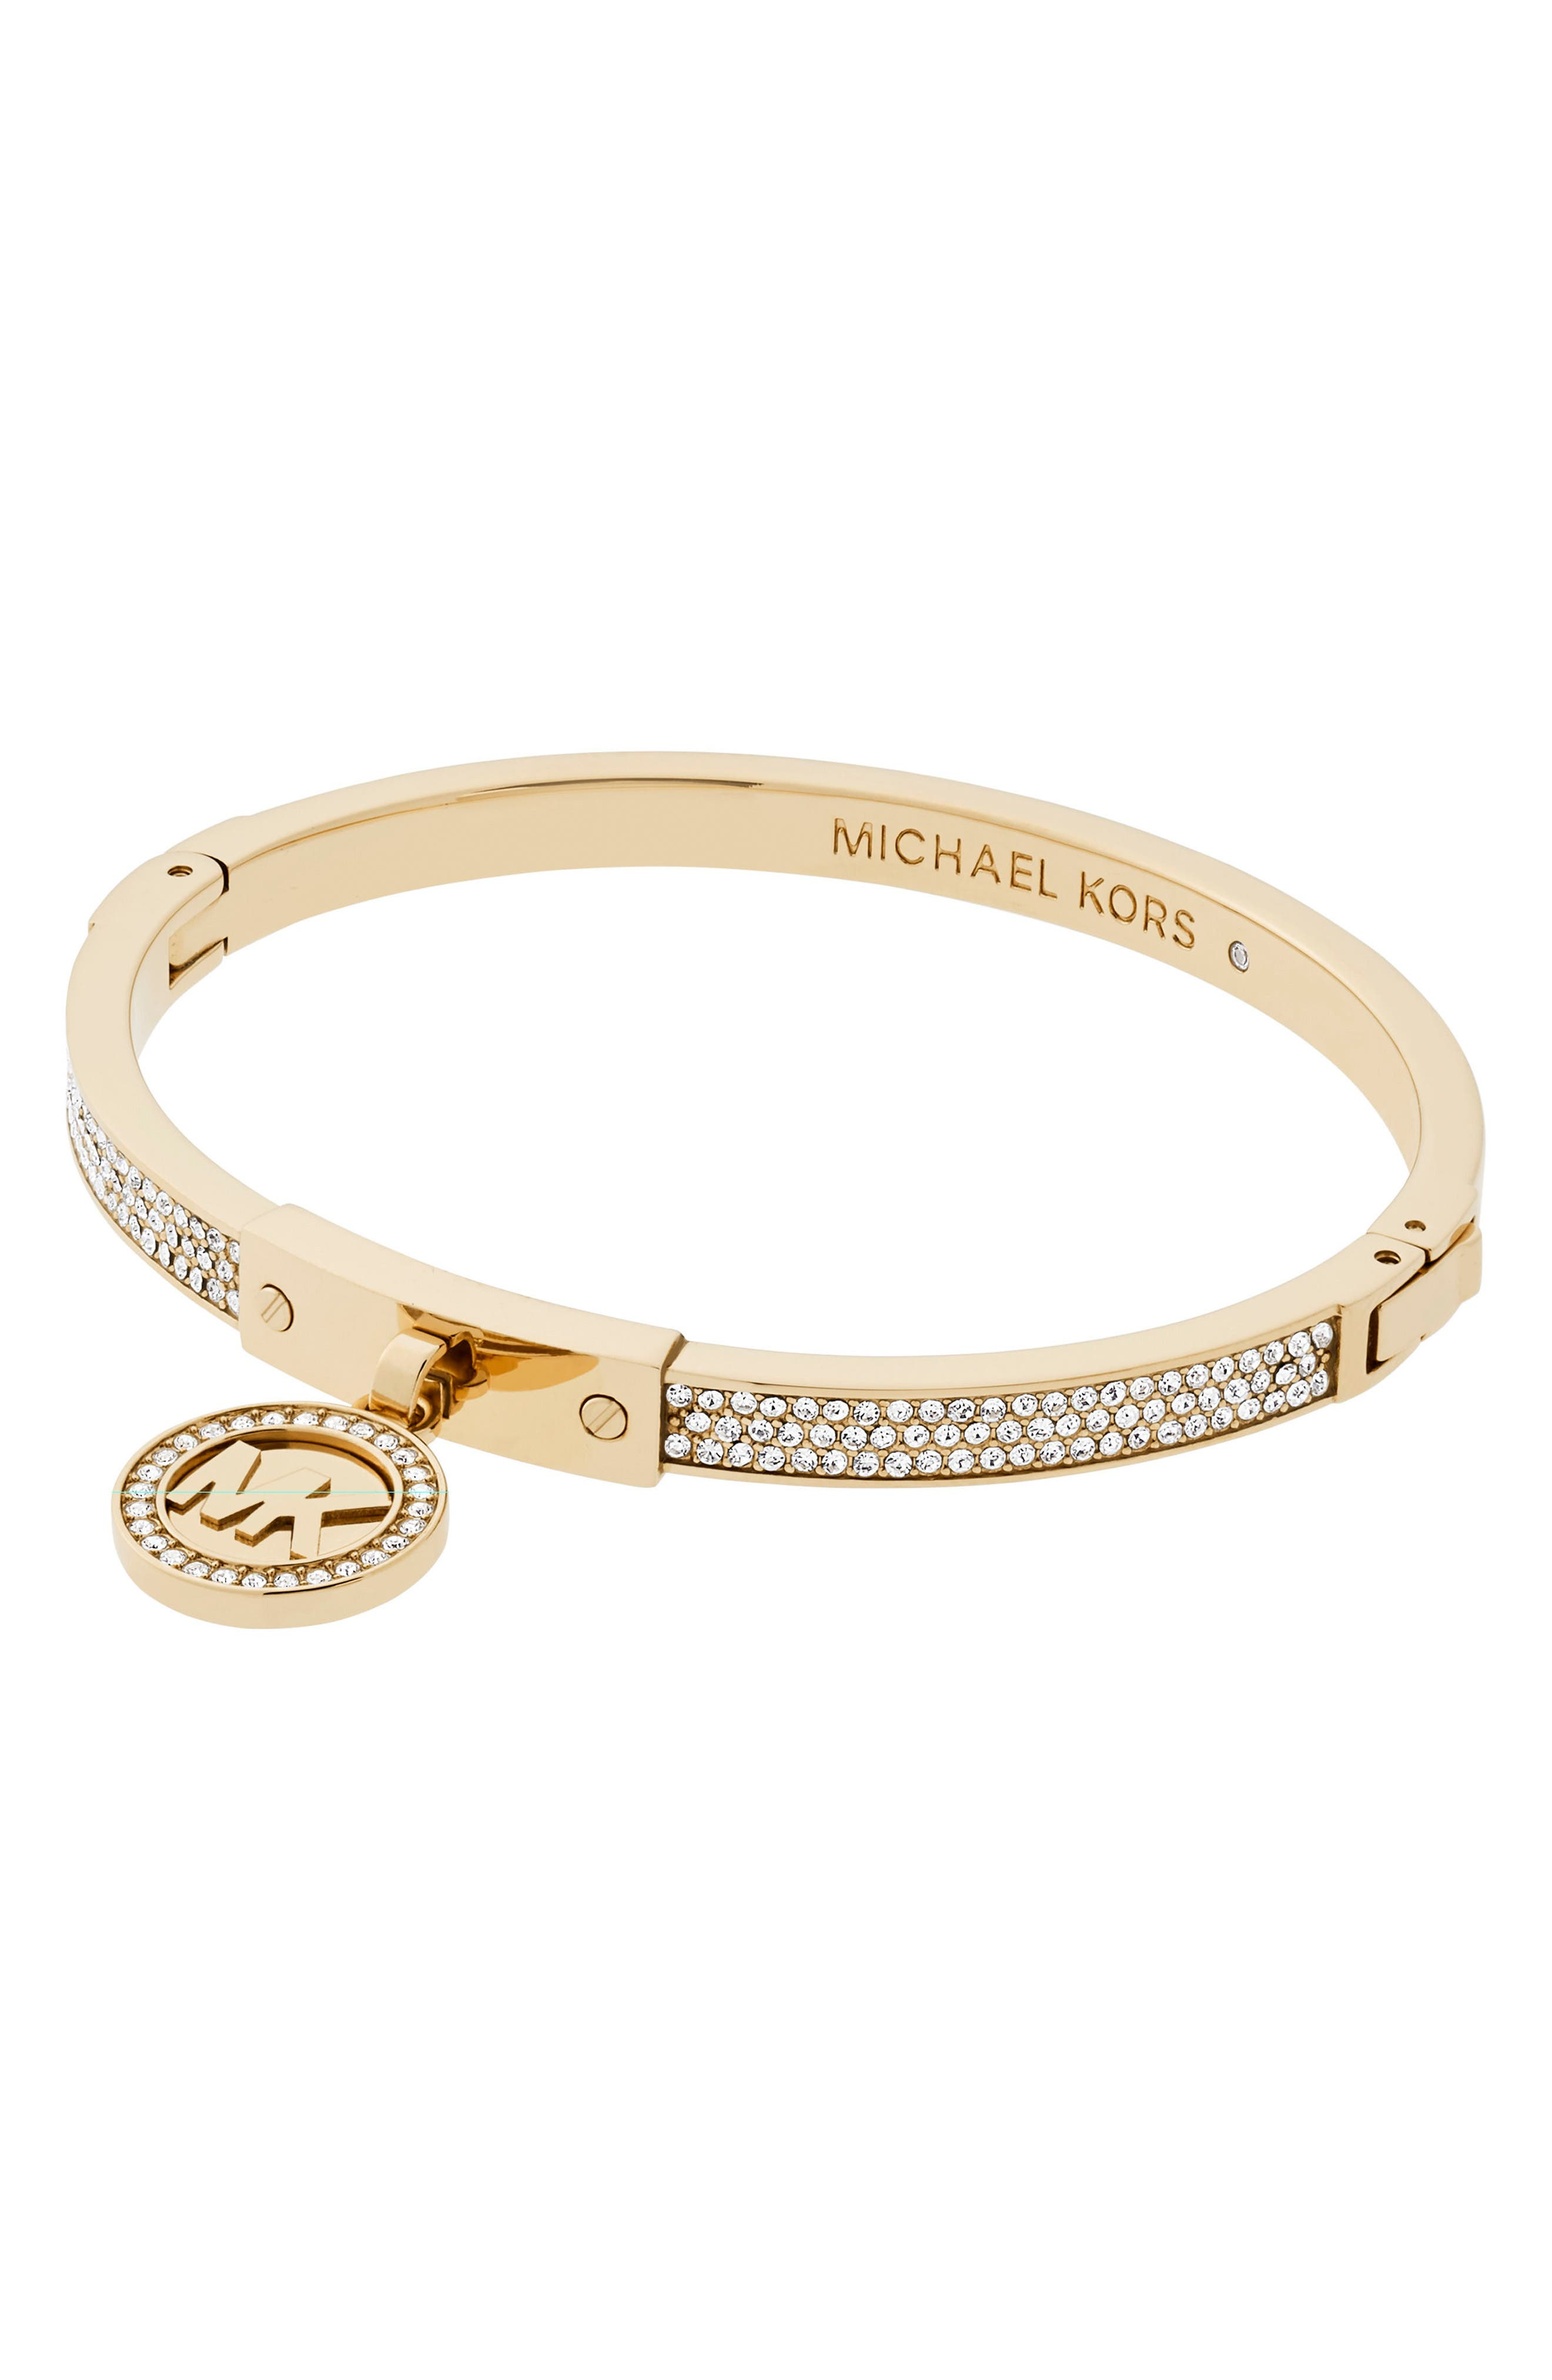 Alternate Image 1 Selected - Michael Kors Crsytal Bracelet